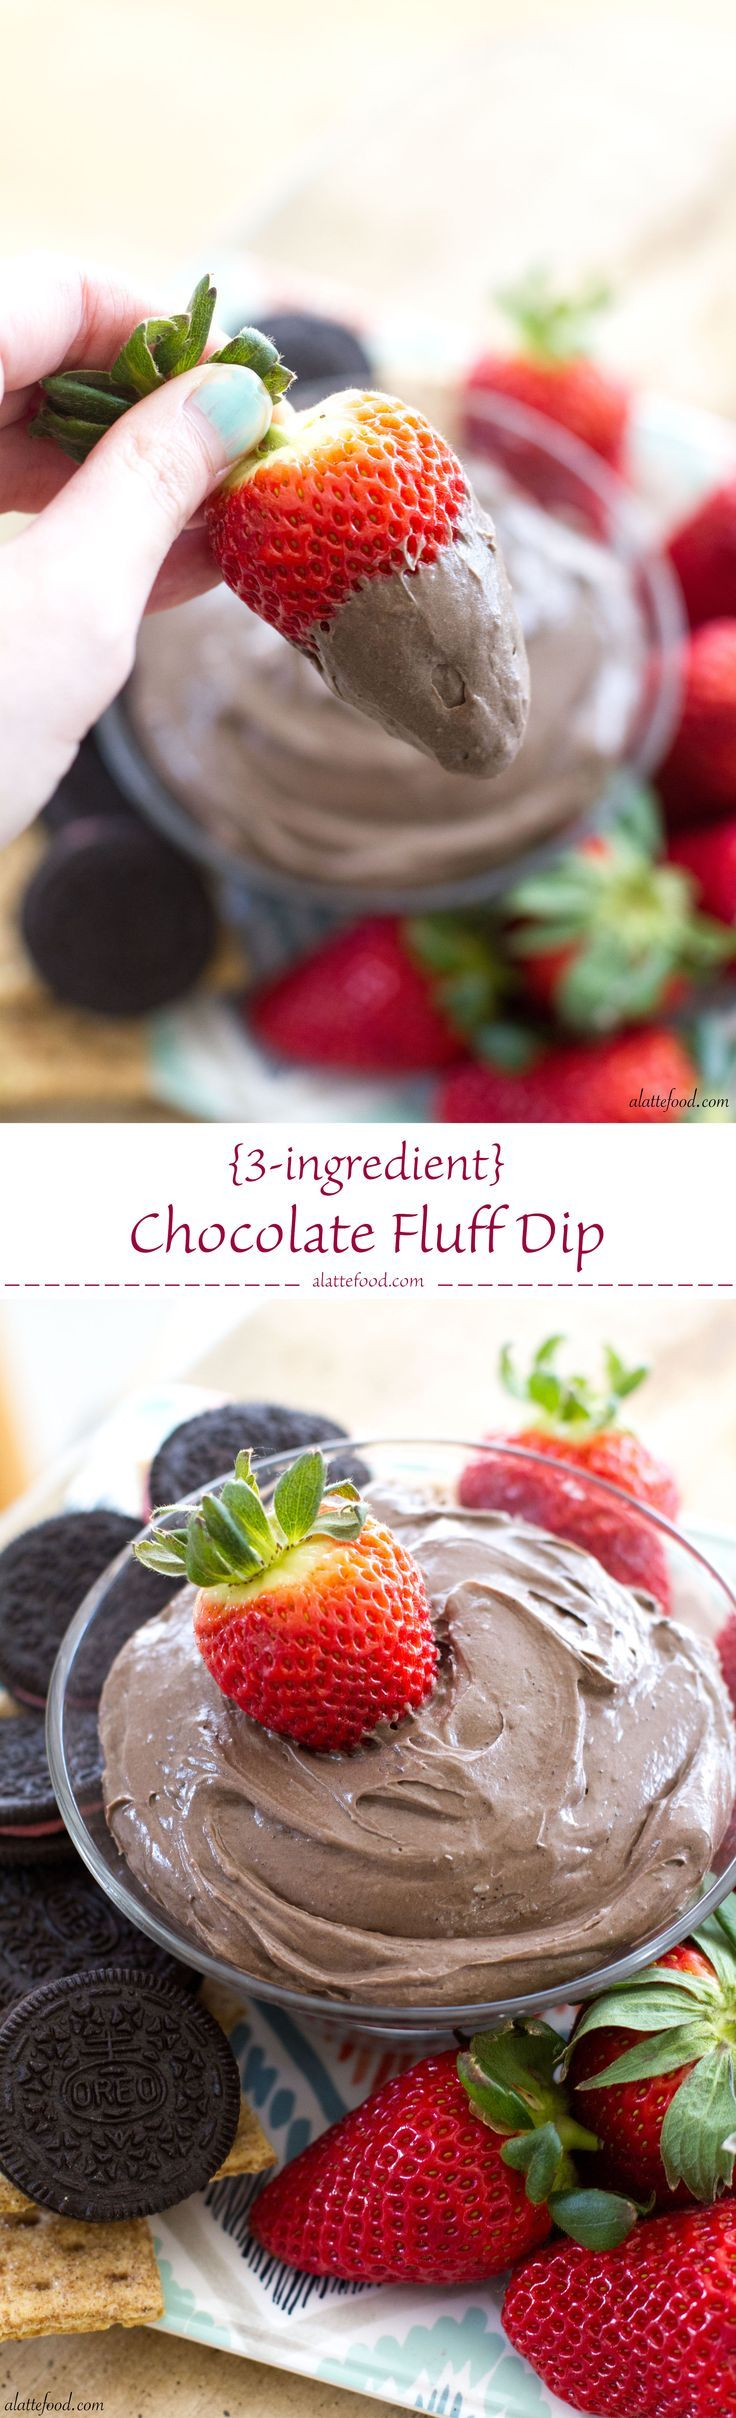 {3-ingredient} Chocolate Fluff Dip | {3-ingredient} Chocolate Fluff Dip: This easy appetizer dip is made with only 3 ingredients and tastes like gold. Its the best.